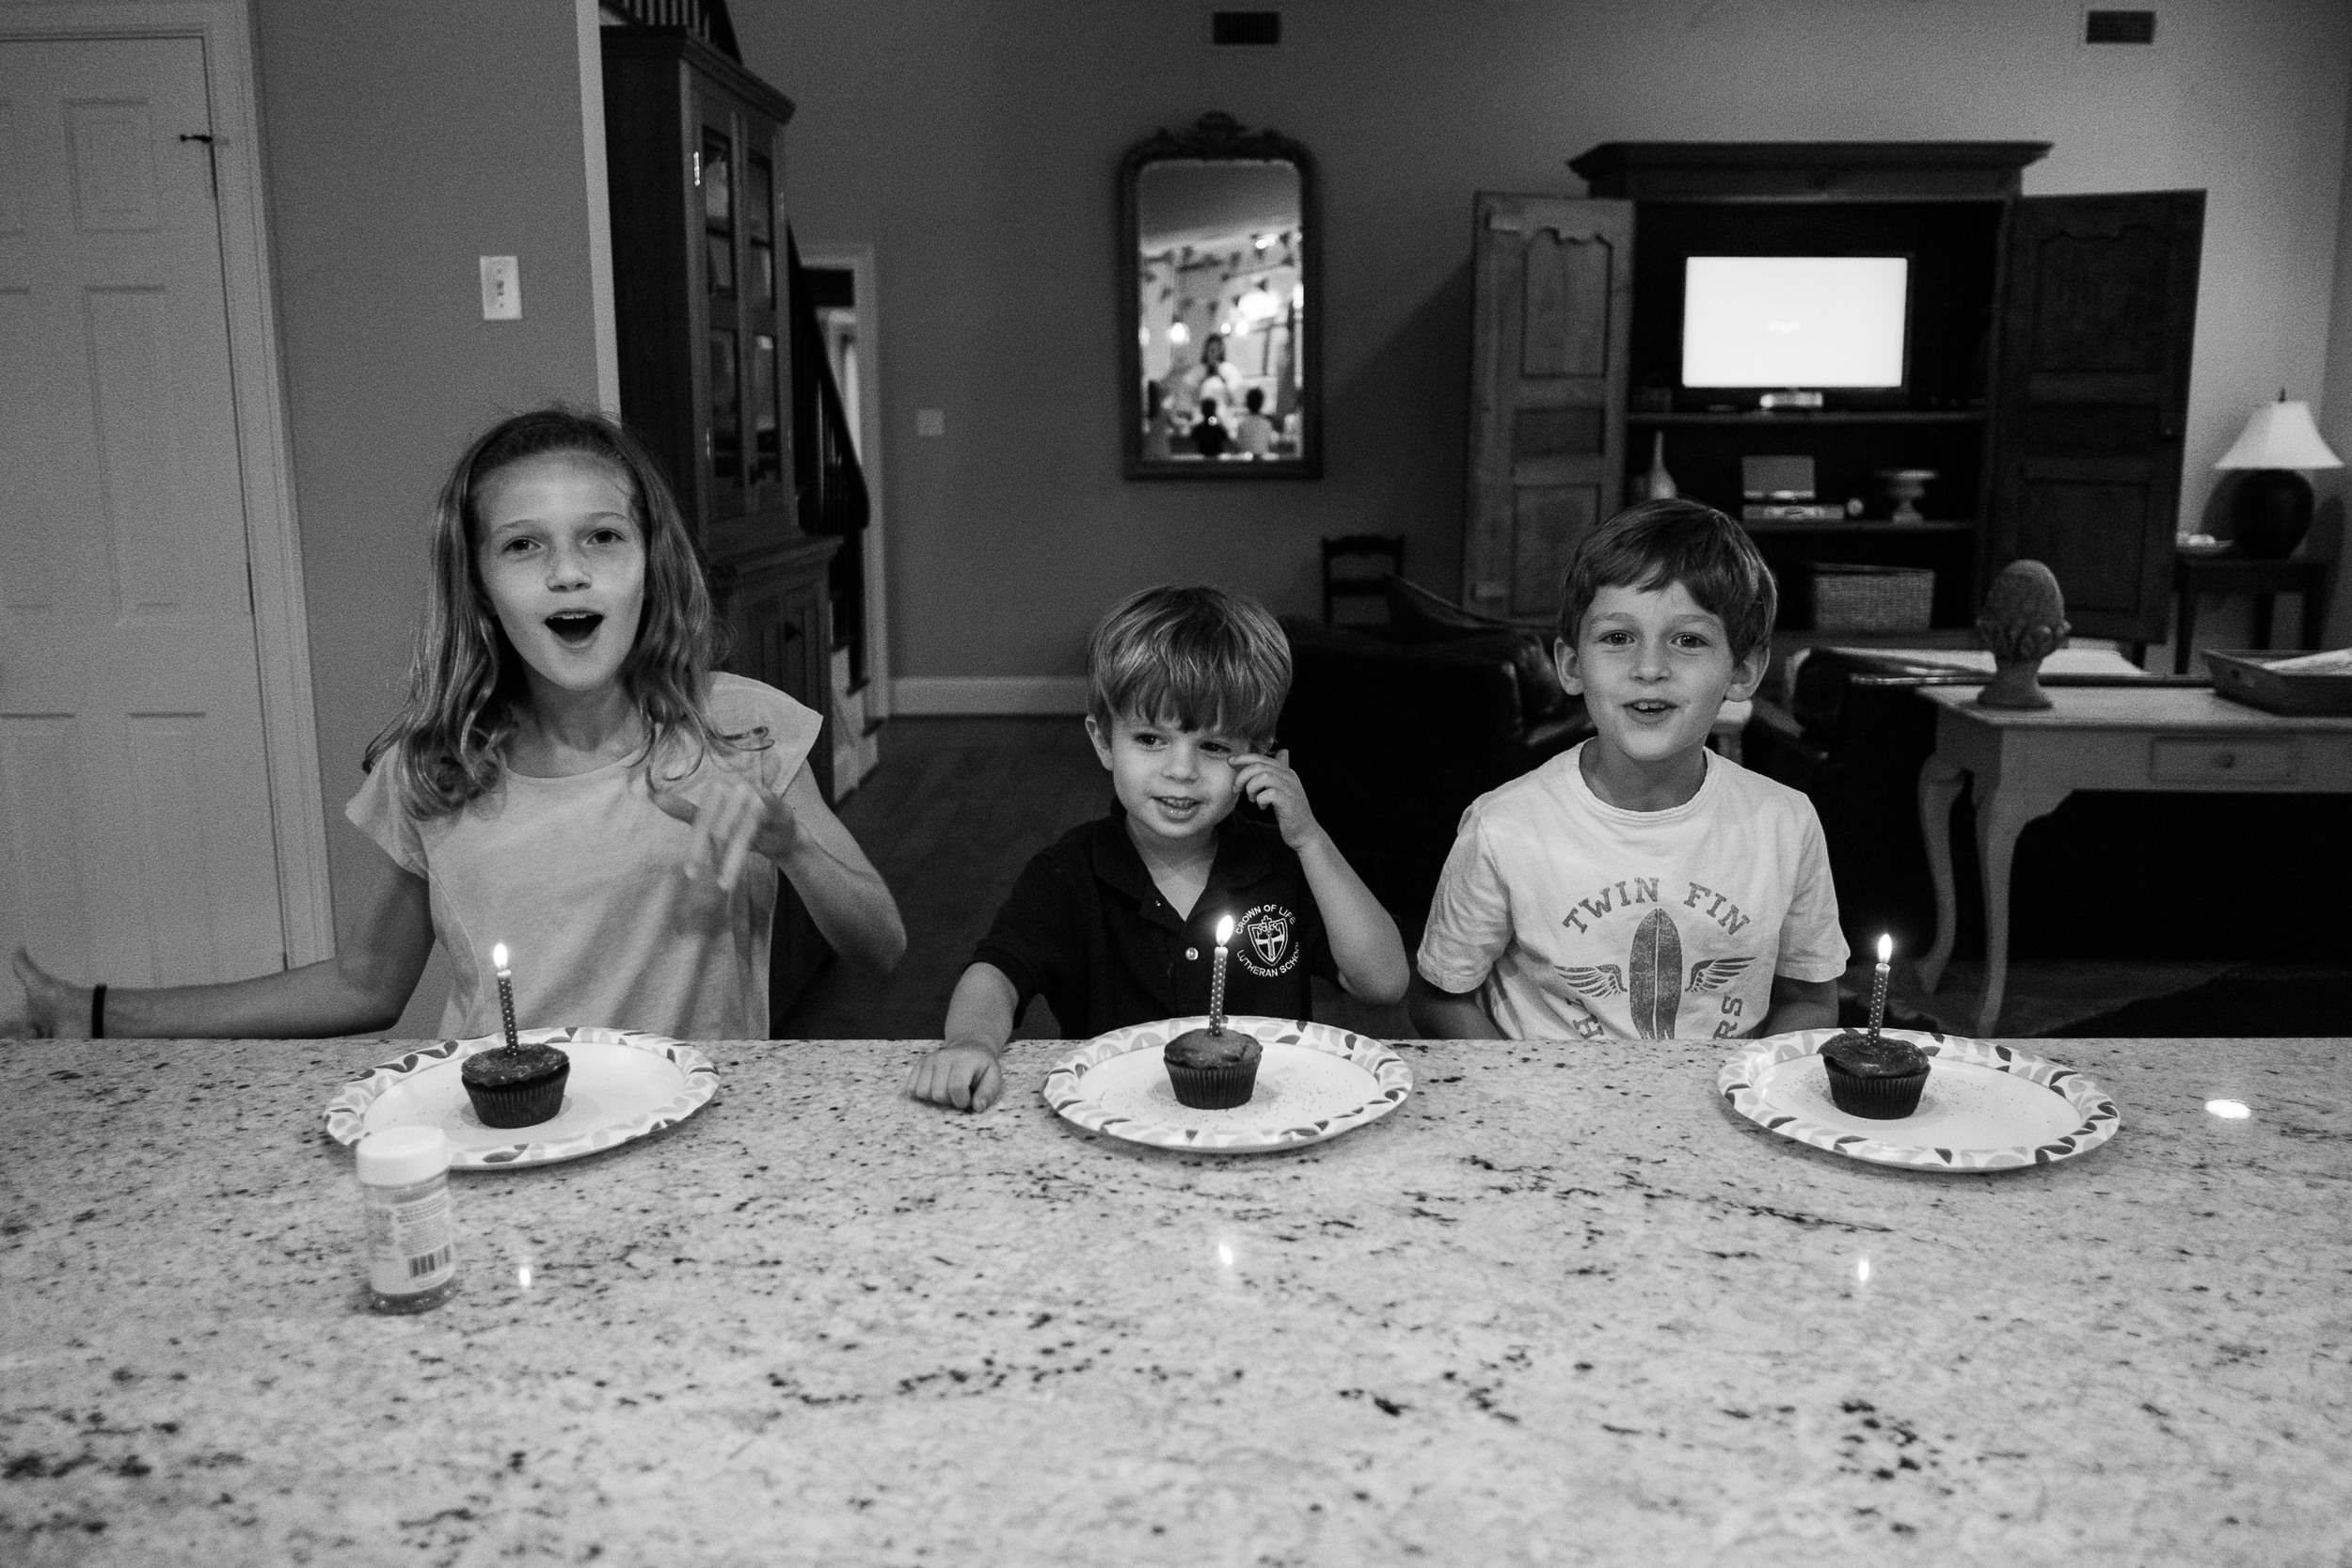 With the friends and family parties not happening until the weekend, we celebrated Michael's actual birthday with cupcakes after dinner. Naturally everyone had to have a lit candle. Wishes all-around!